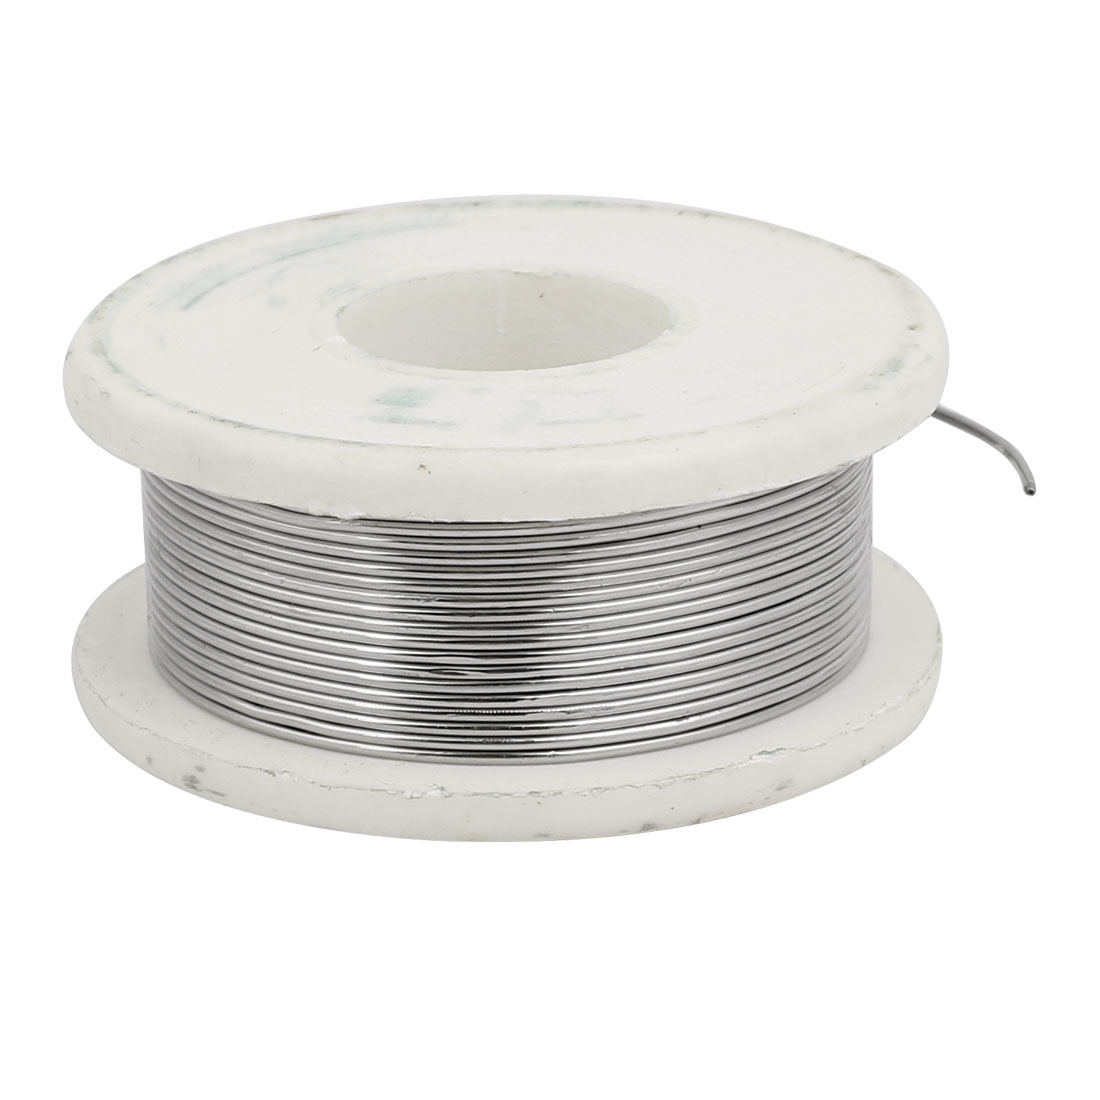 "Unique Bargains 0.8mm 0.03"" Dia 63/37 Tin Lead Rosin Core Soldering Iron Solder Wire Reel"